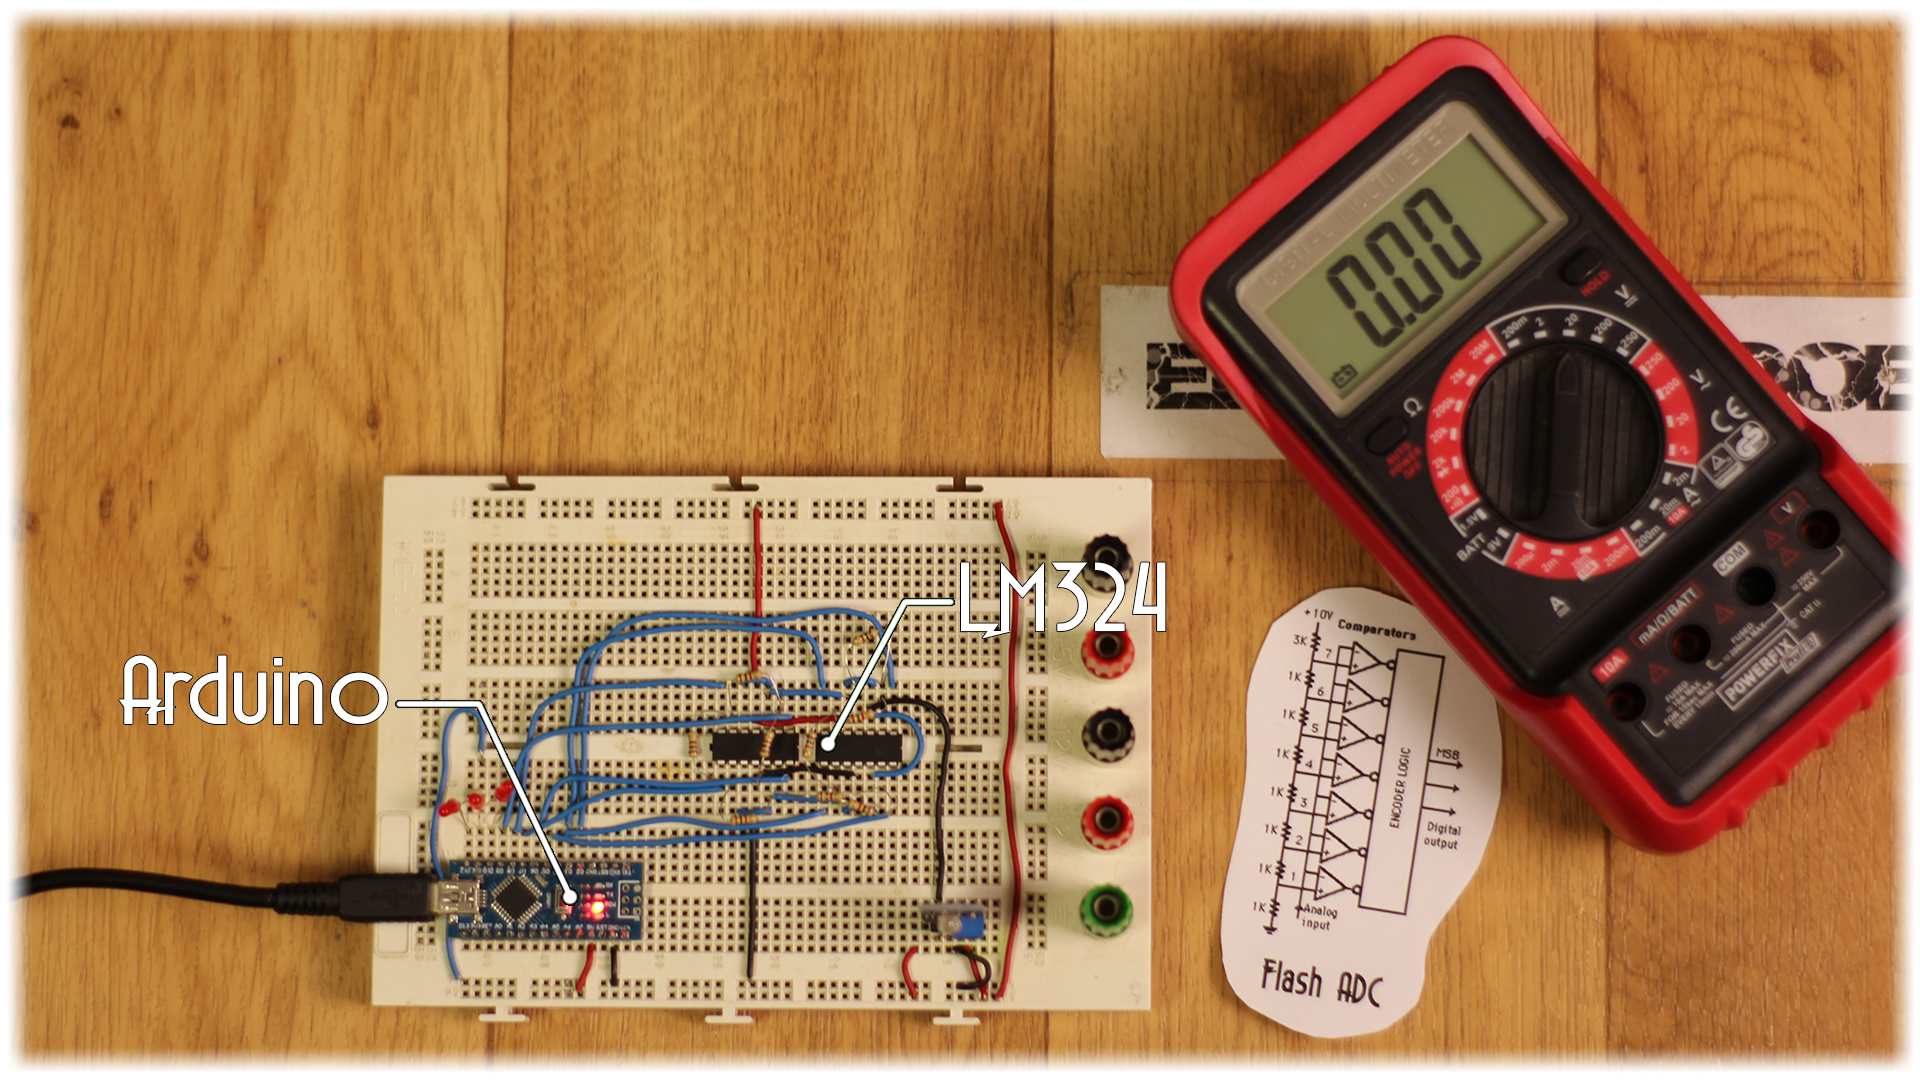 Diy 3bit Flash Adc Comparator Circuits Examples Tutorial